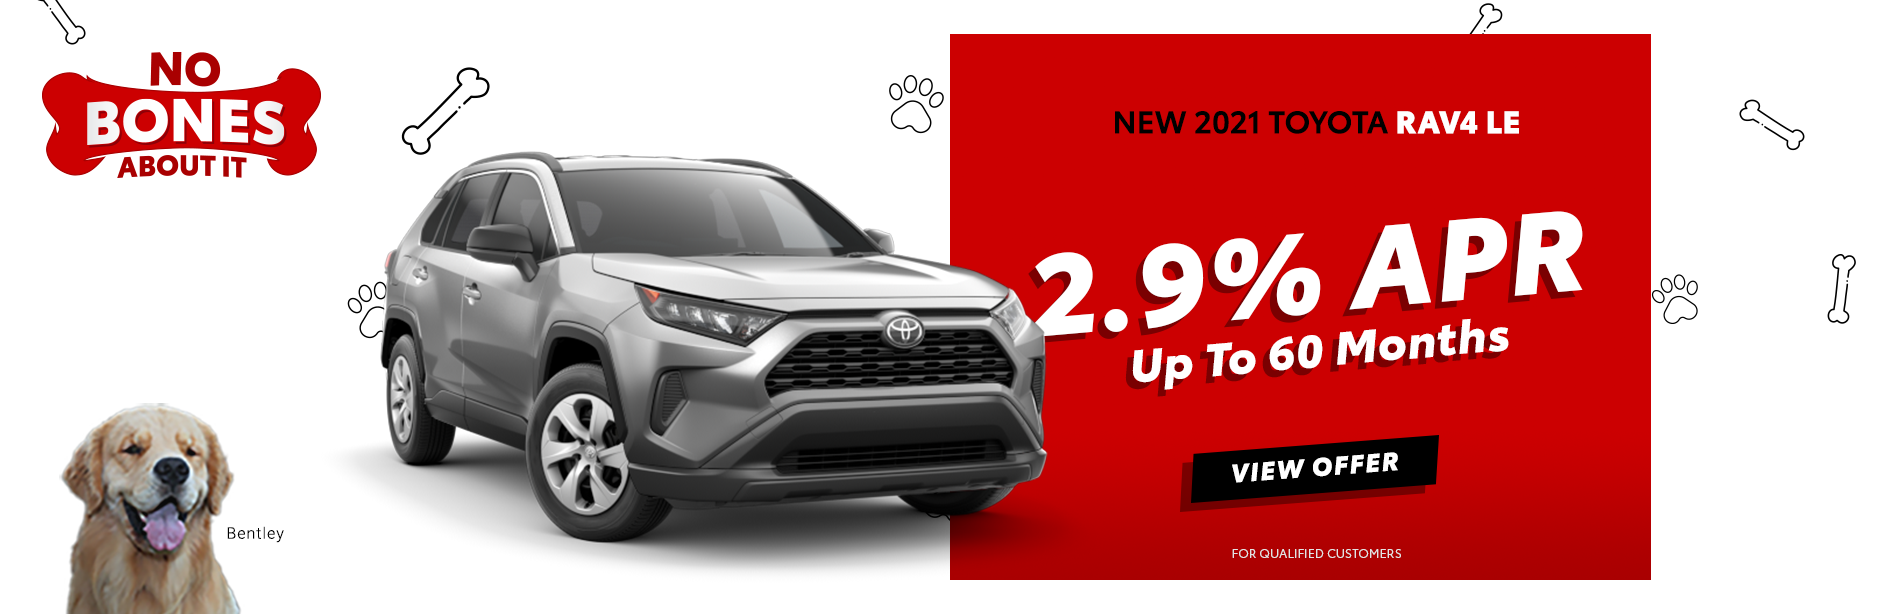 View Rochester Toyota Specials on new 2021 RAV4 LE models